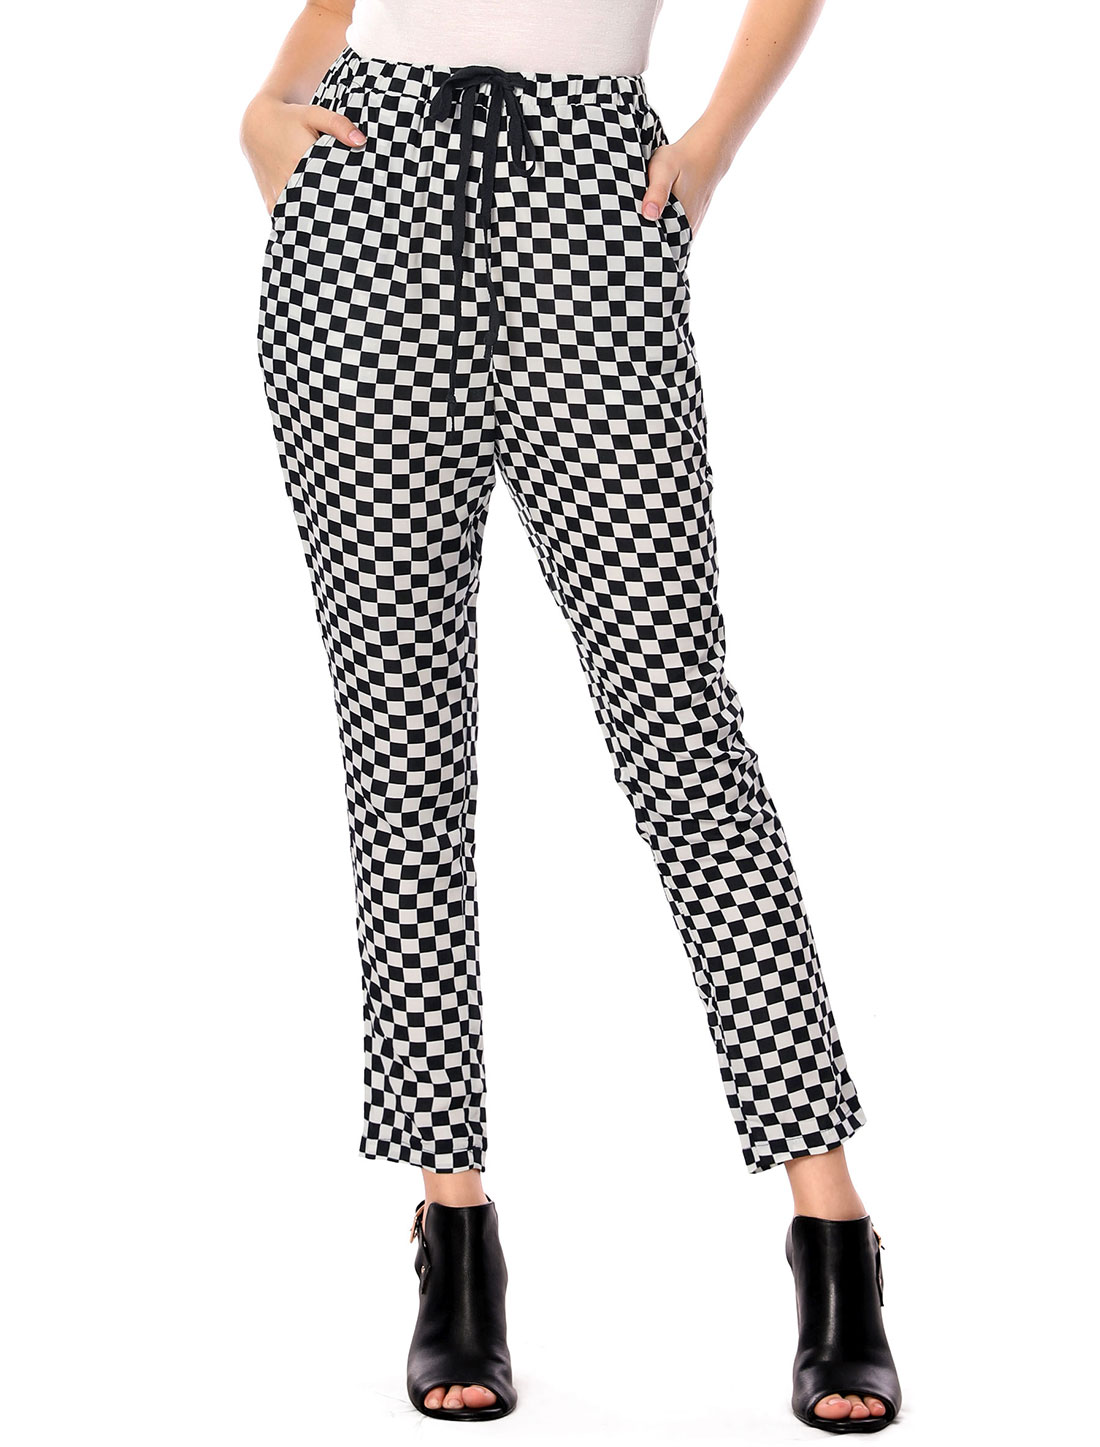 Lady Drawstring Check Pattern Slant Pockets Pants Black White L